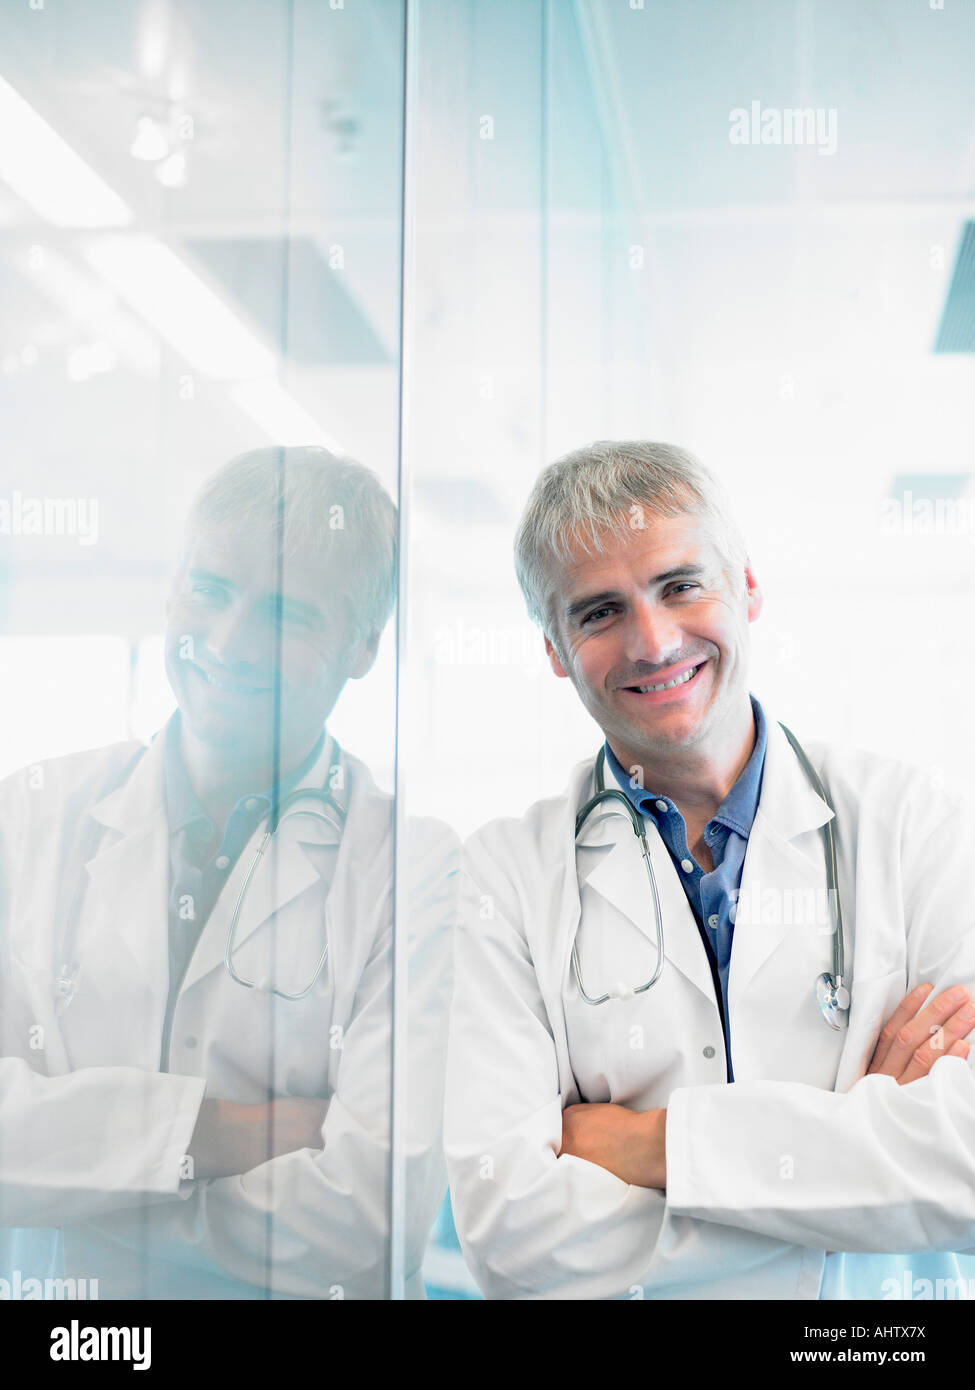 Smiling doctor leaning on wall in hospital lobby. - Stock Image